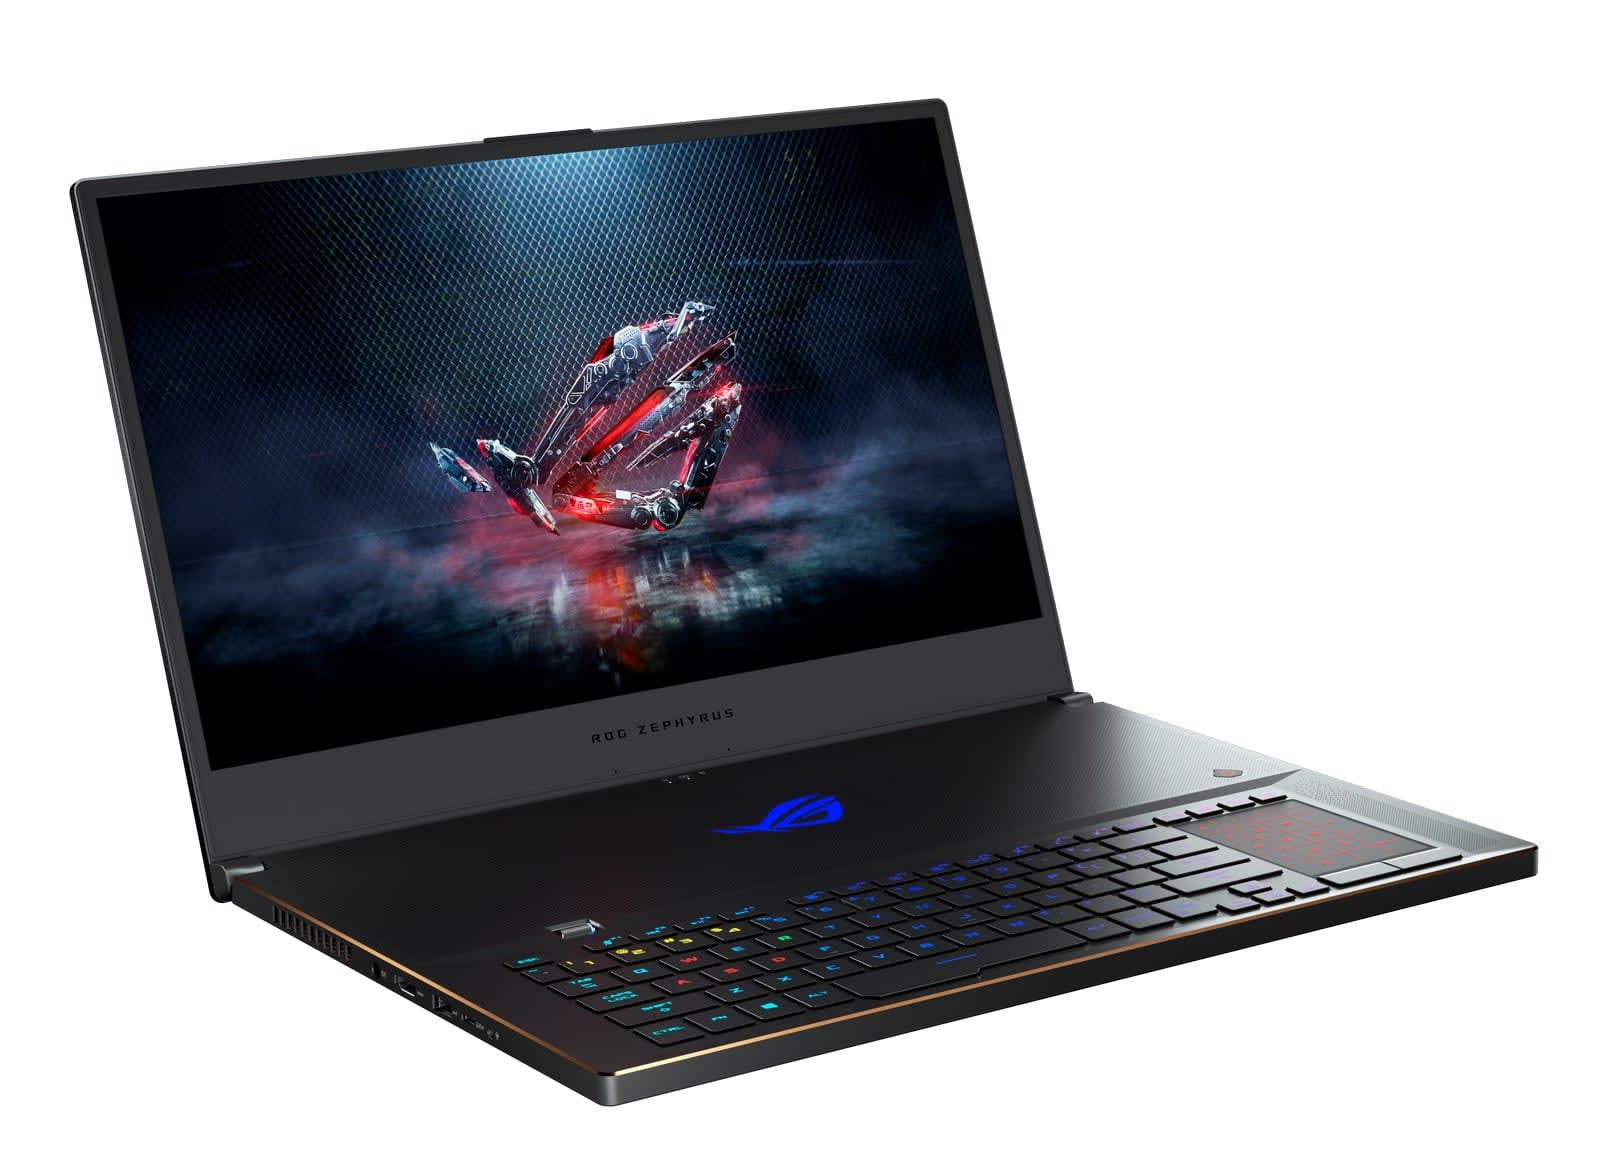 asus thin zephyrus gaming notebook gets a 17 inch screen